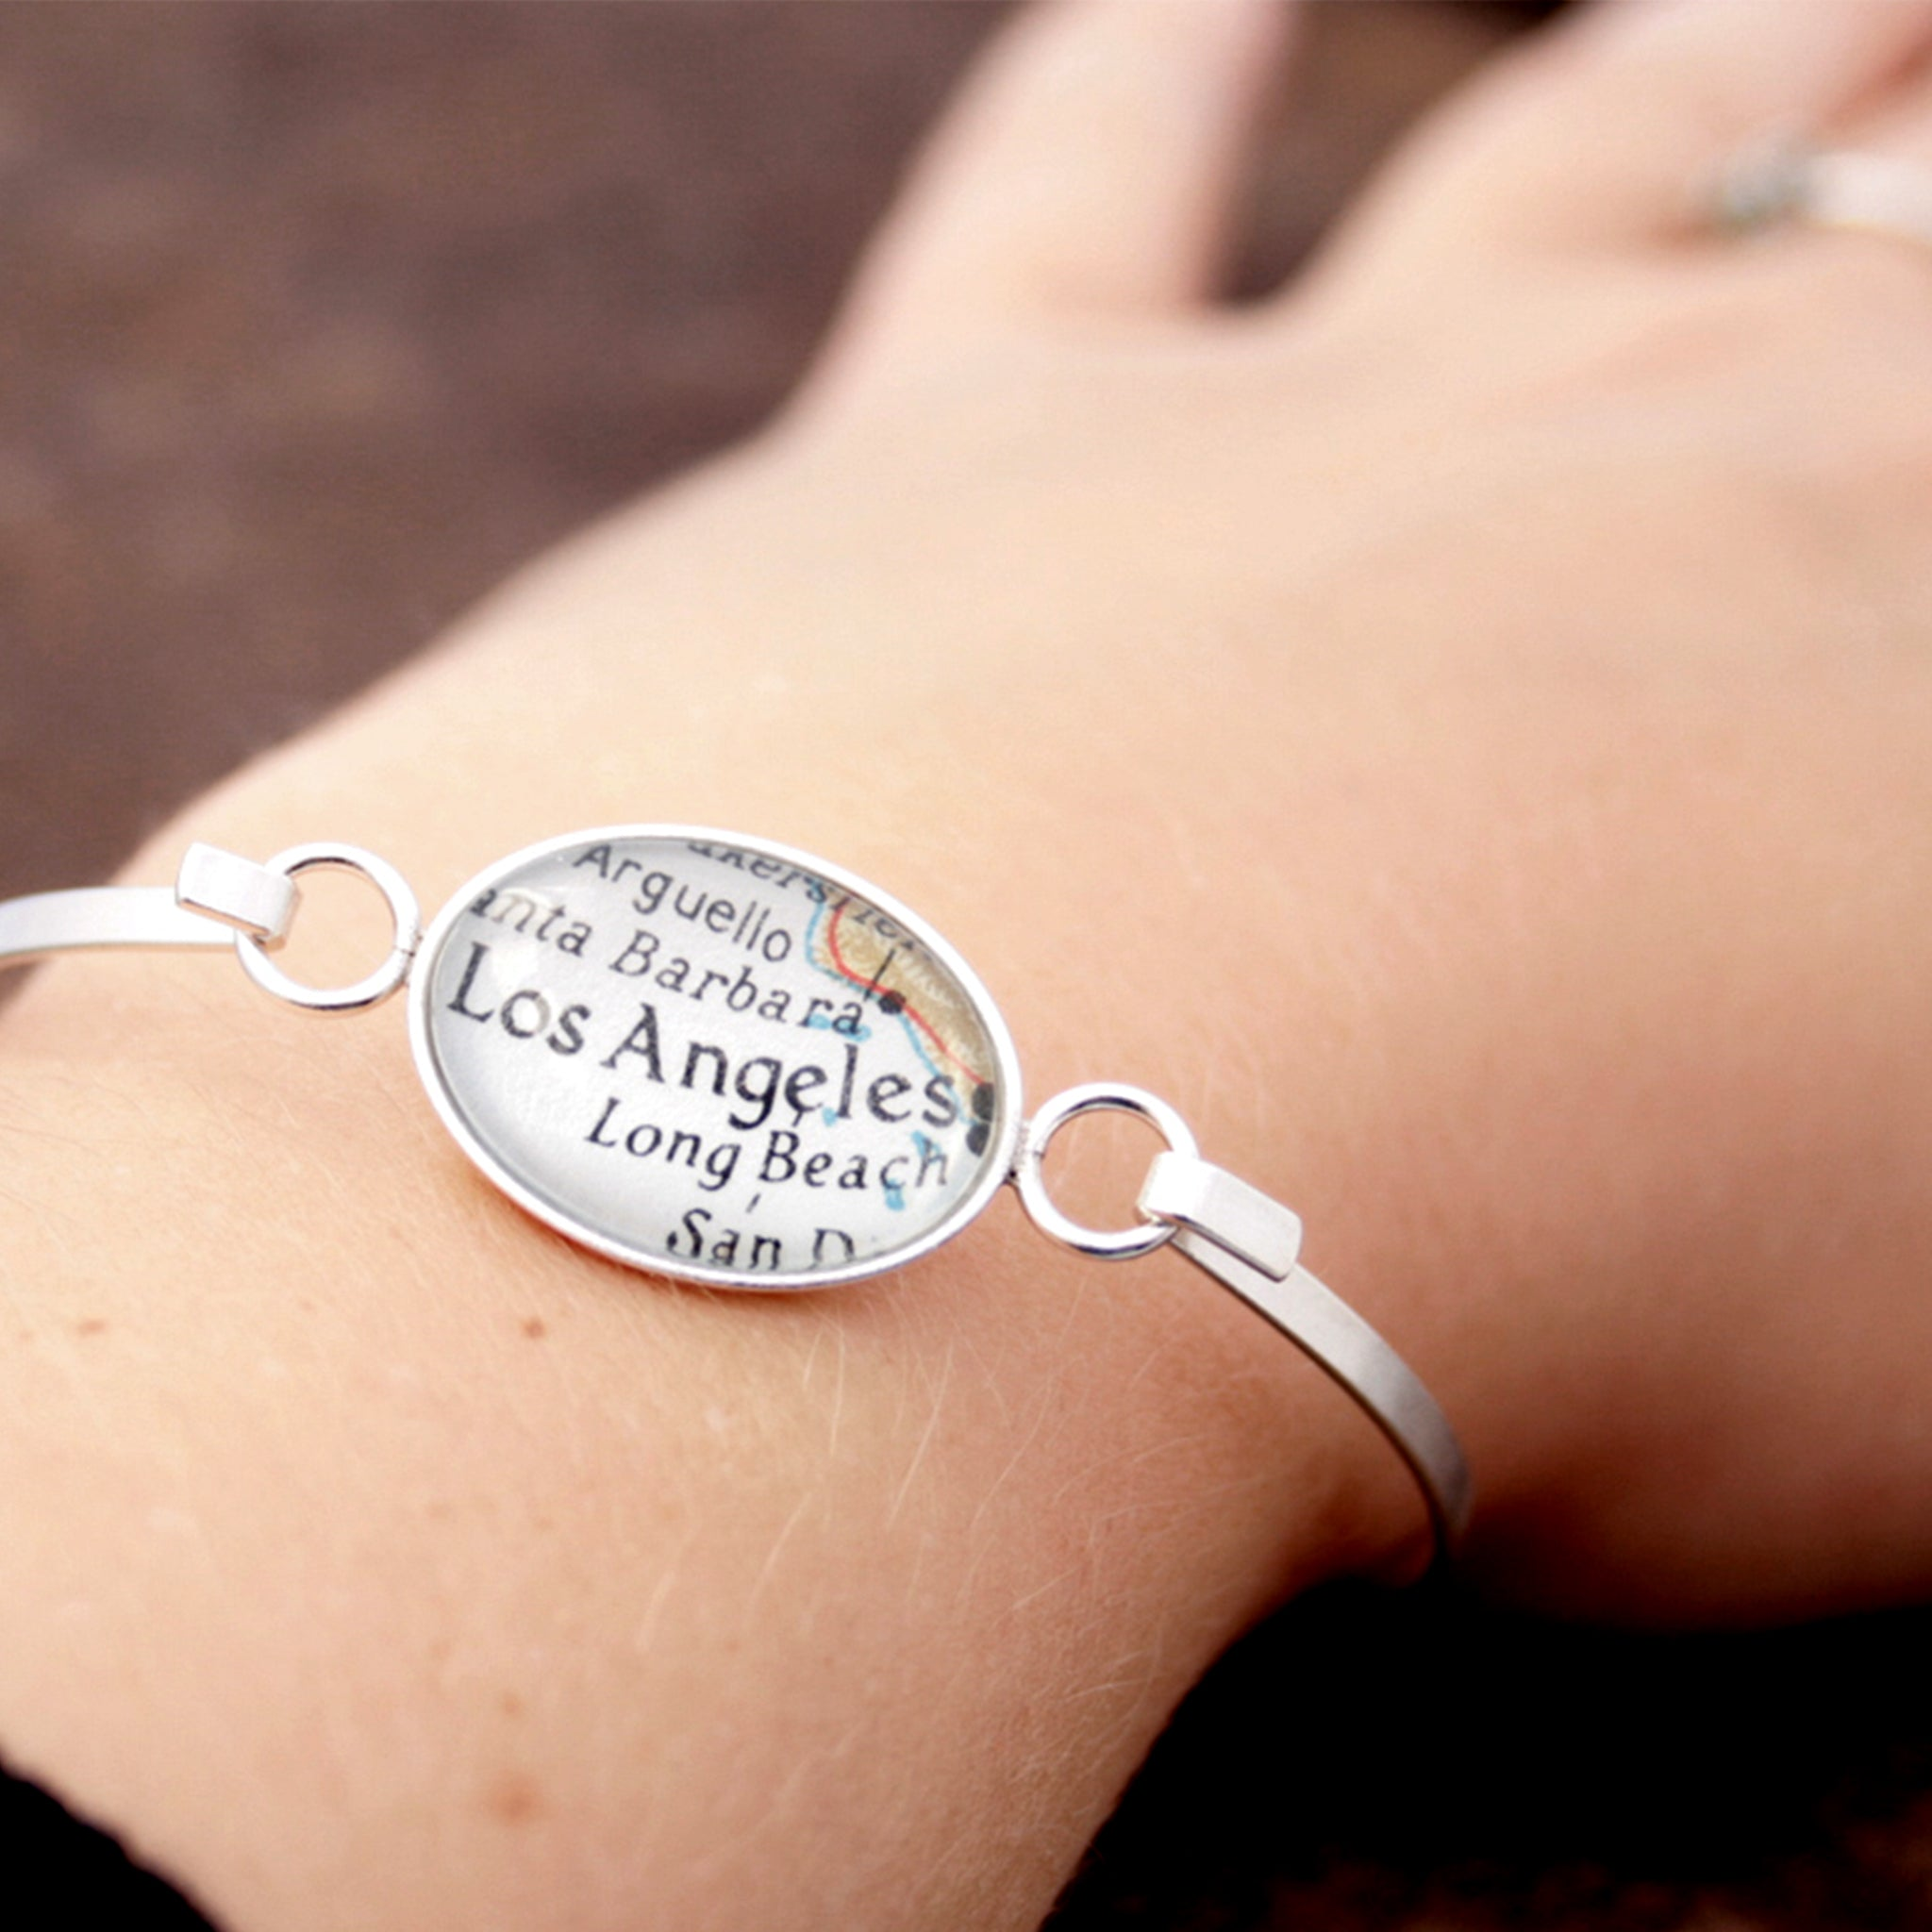 Worn on hand Sterling silver bangle bracelet featuring map of Los Angeles